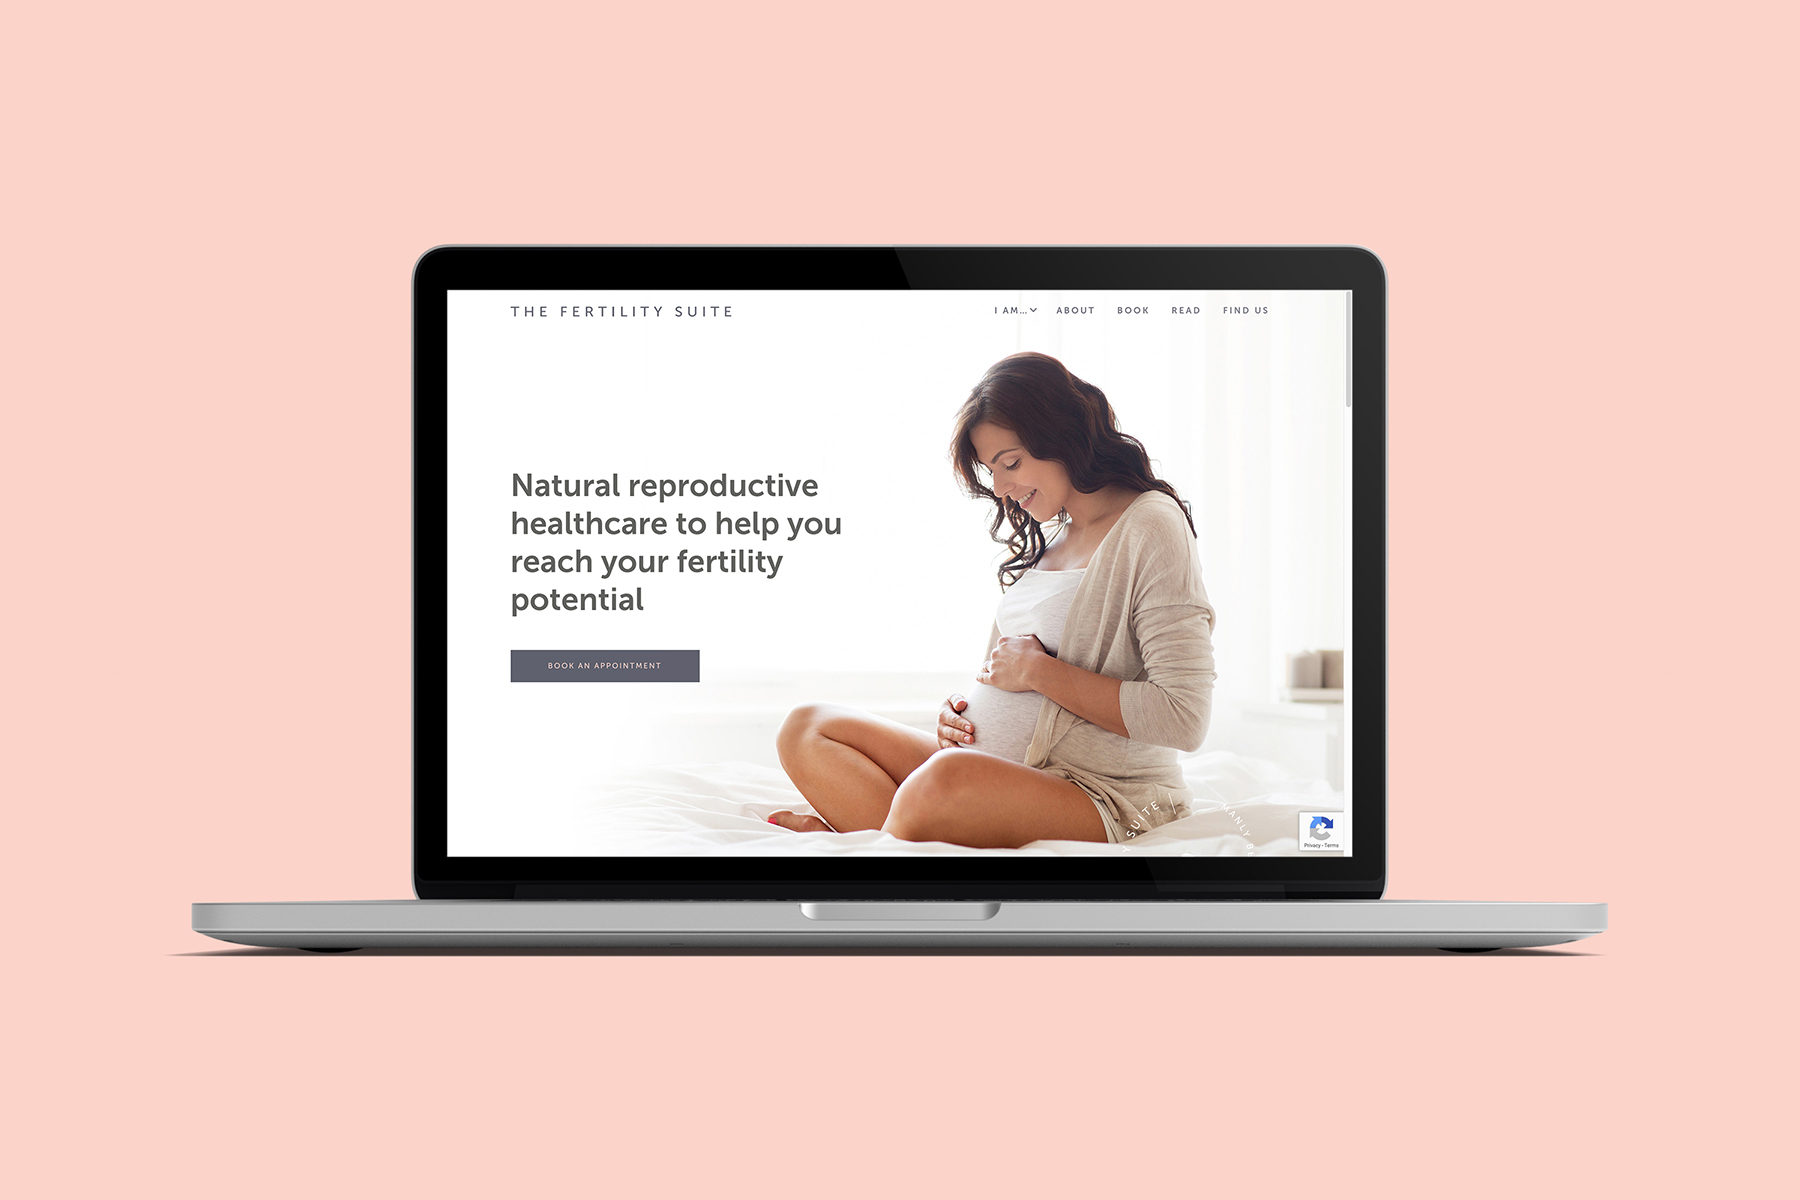 The Fertility Suite website homepage designed by Six Foot Seven